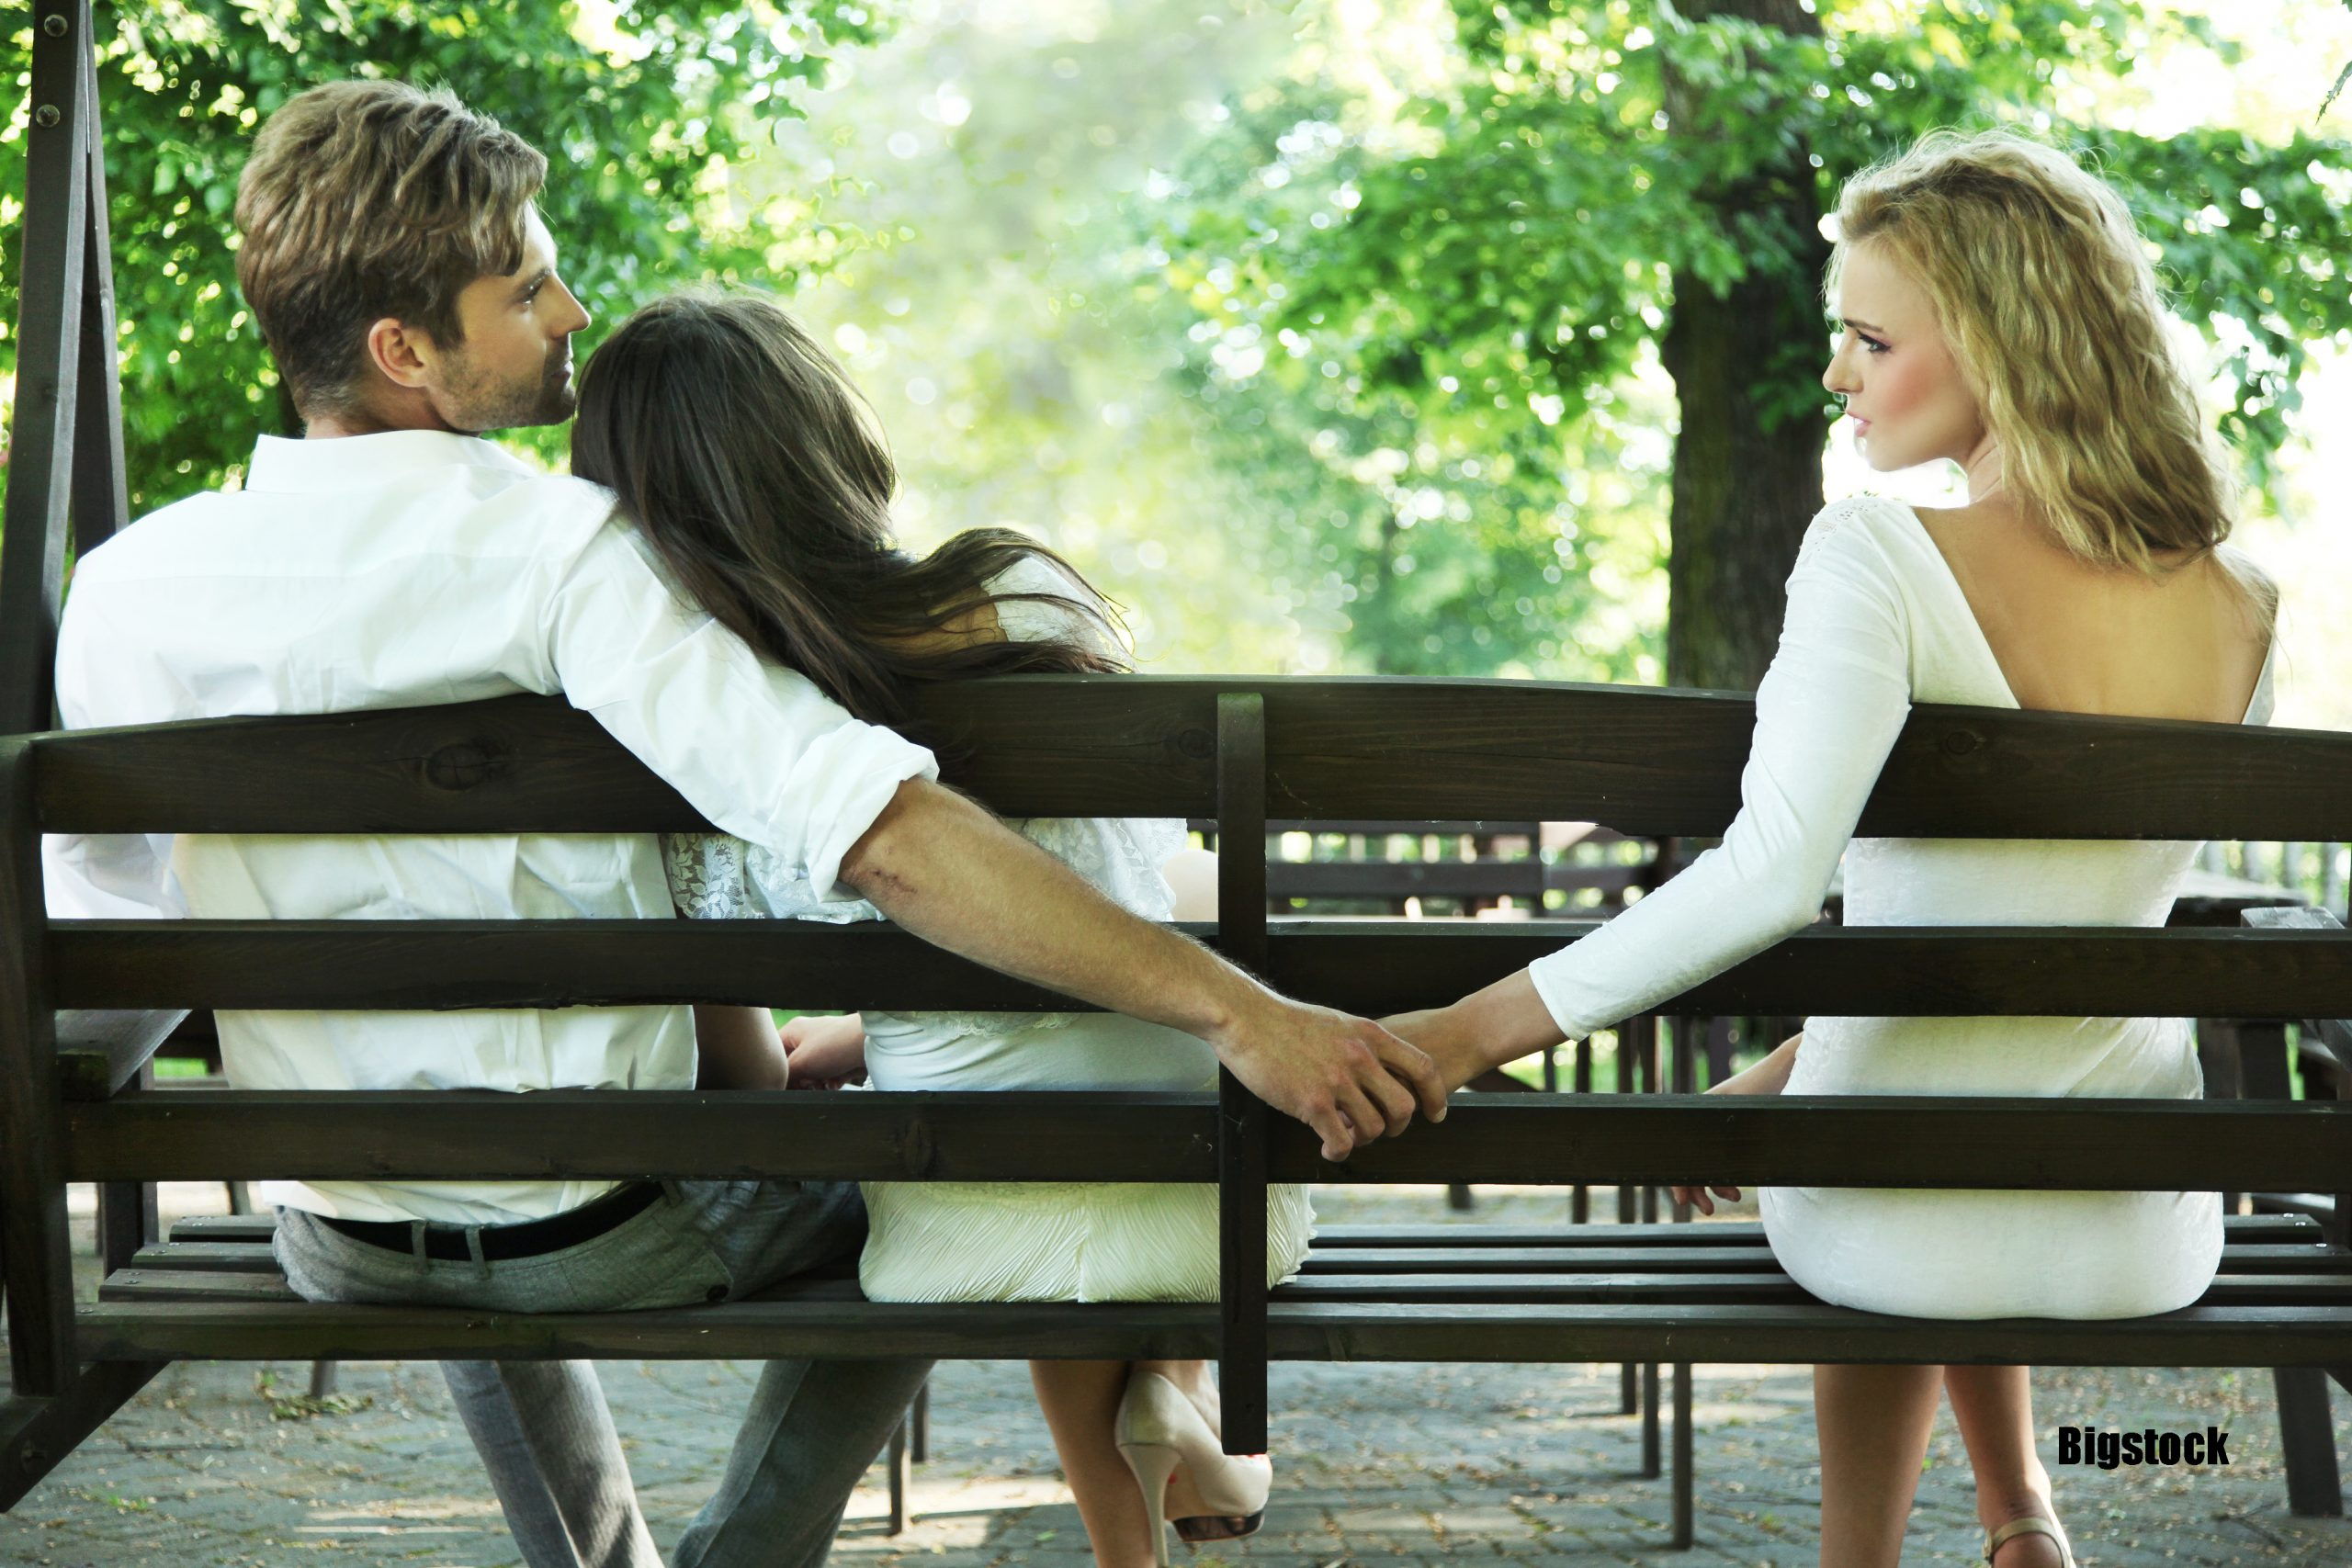 Rebuilding Marriage After Infidelity | How To Save Marriage After Infidelity And Lies